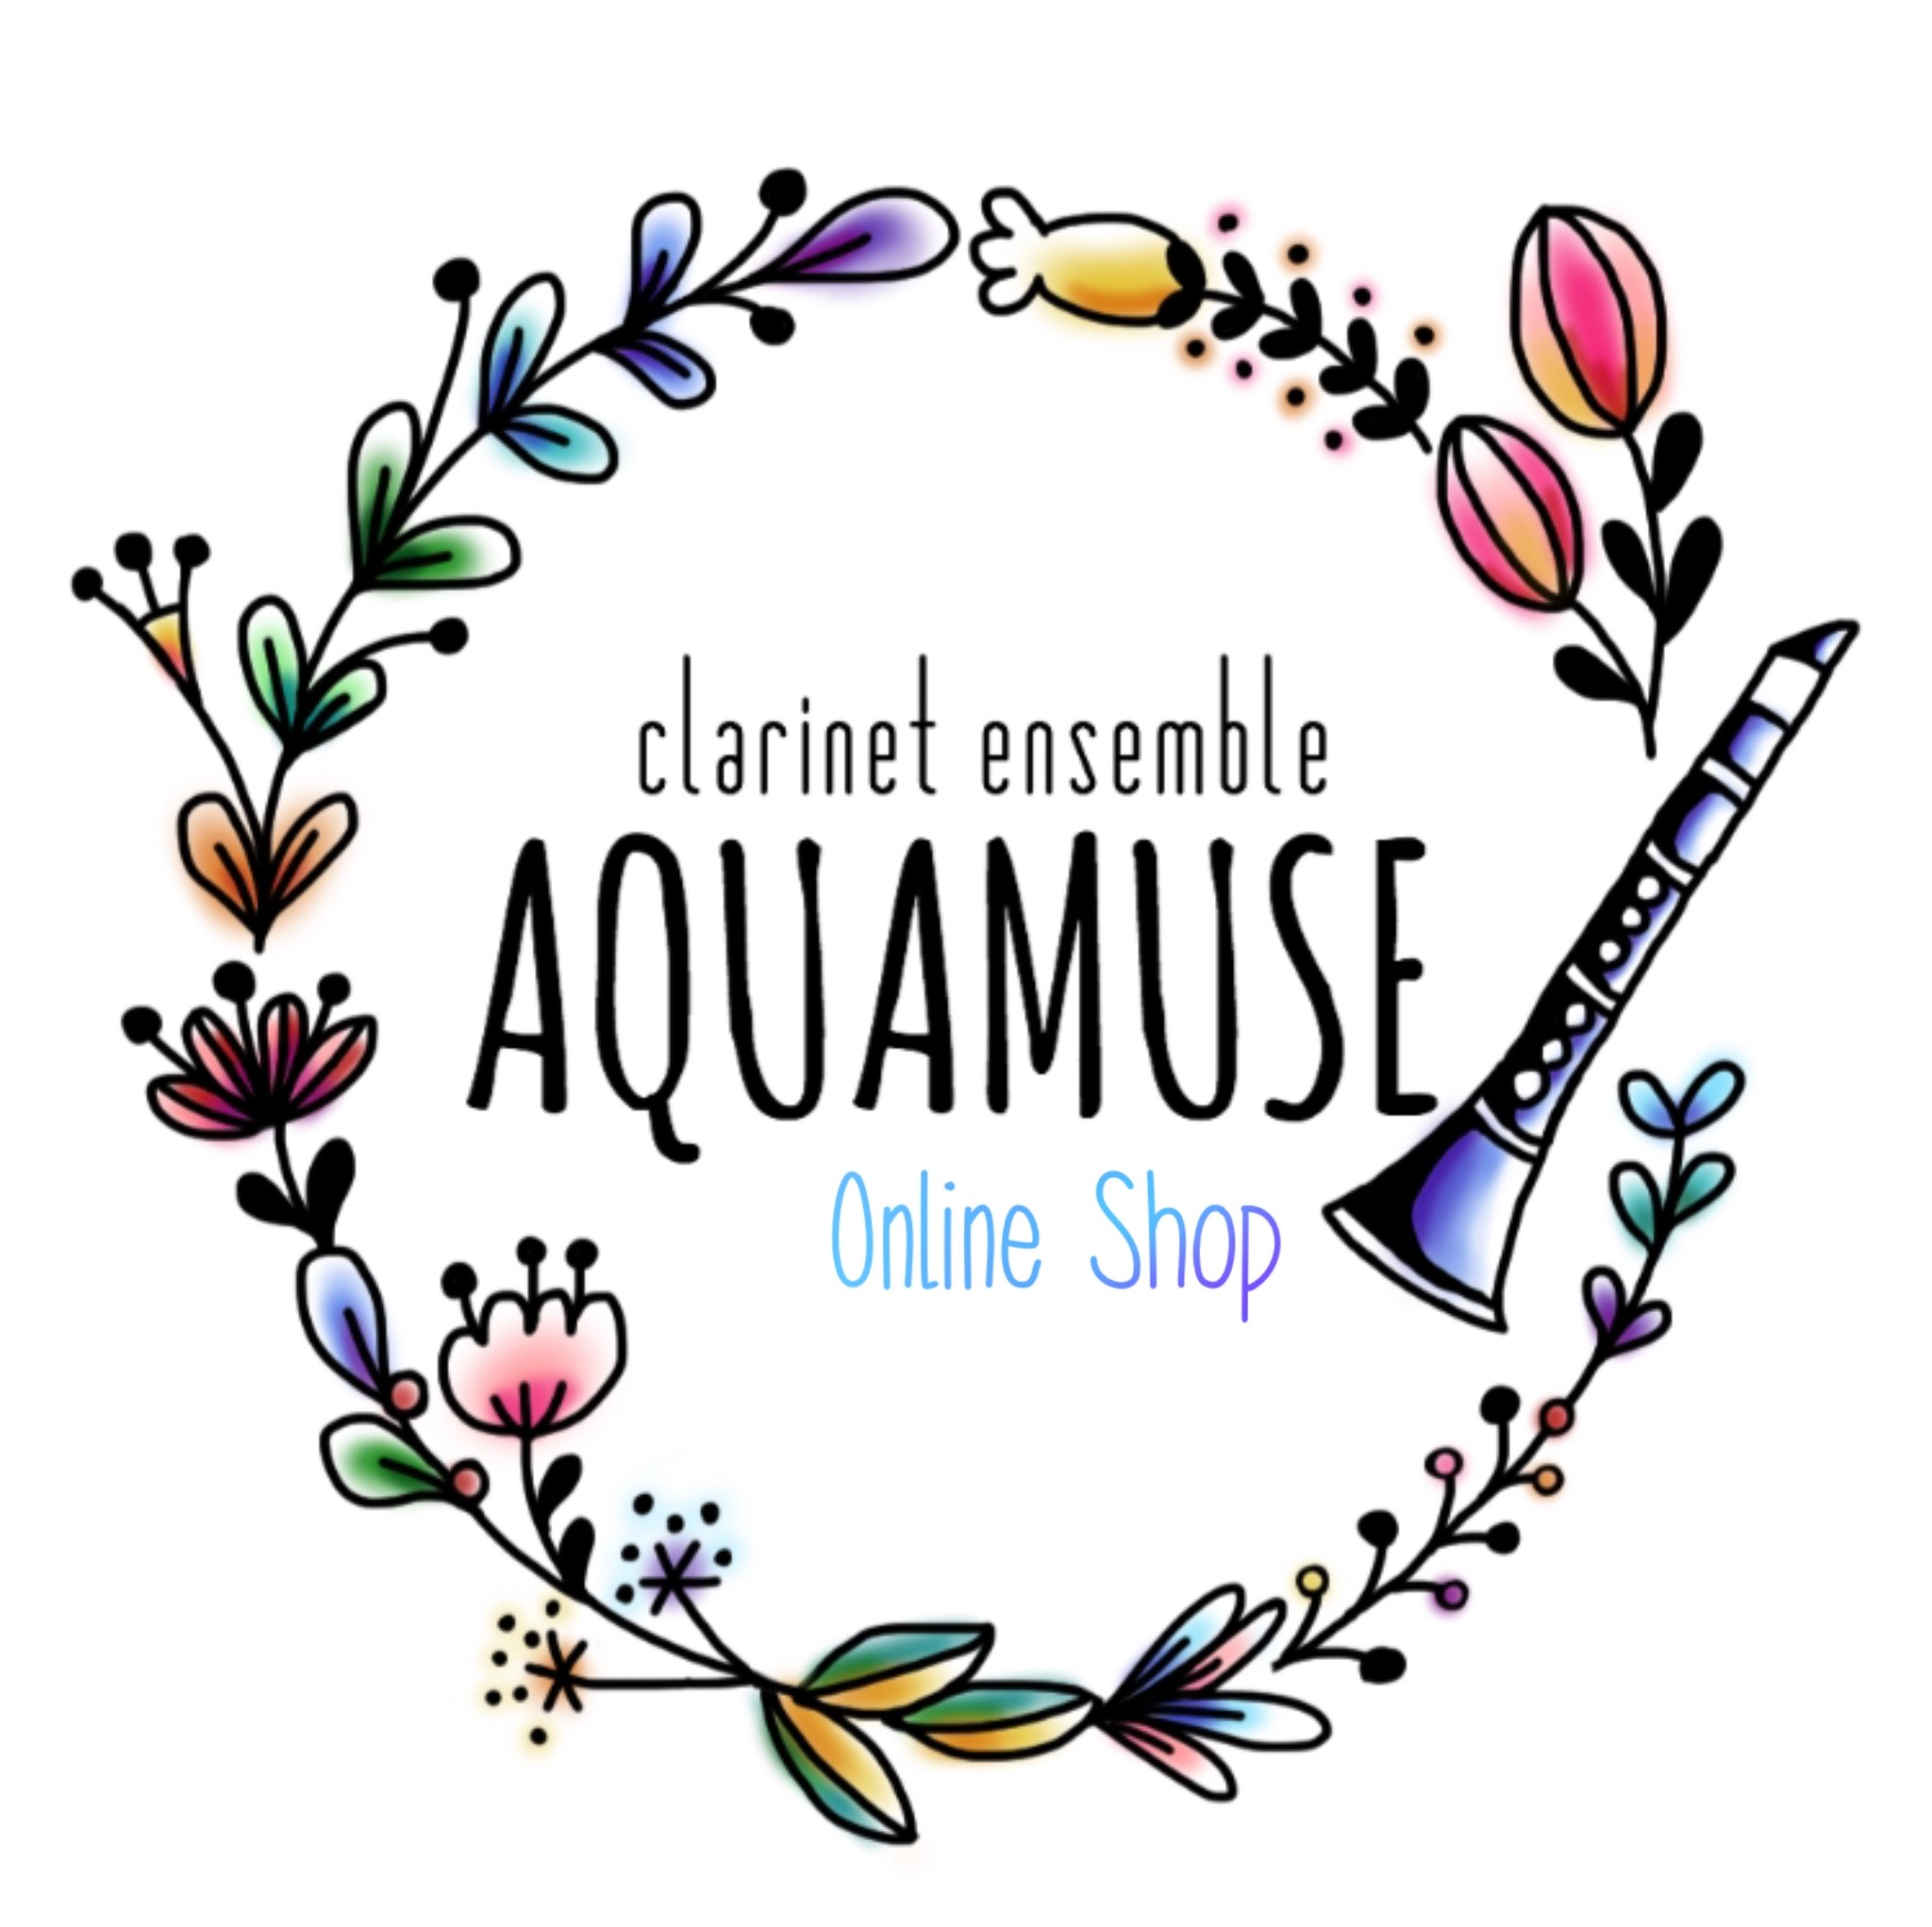 AQUAMUSE Online Shop